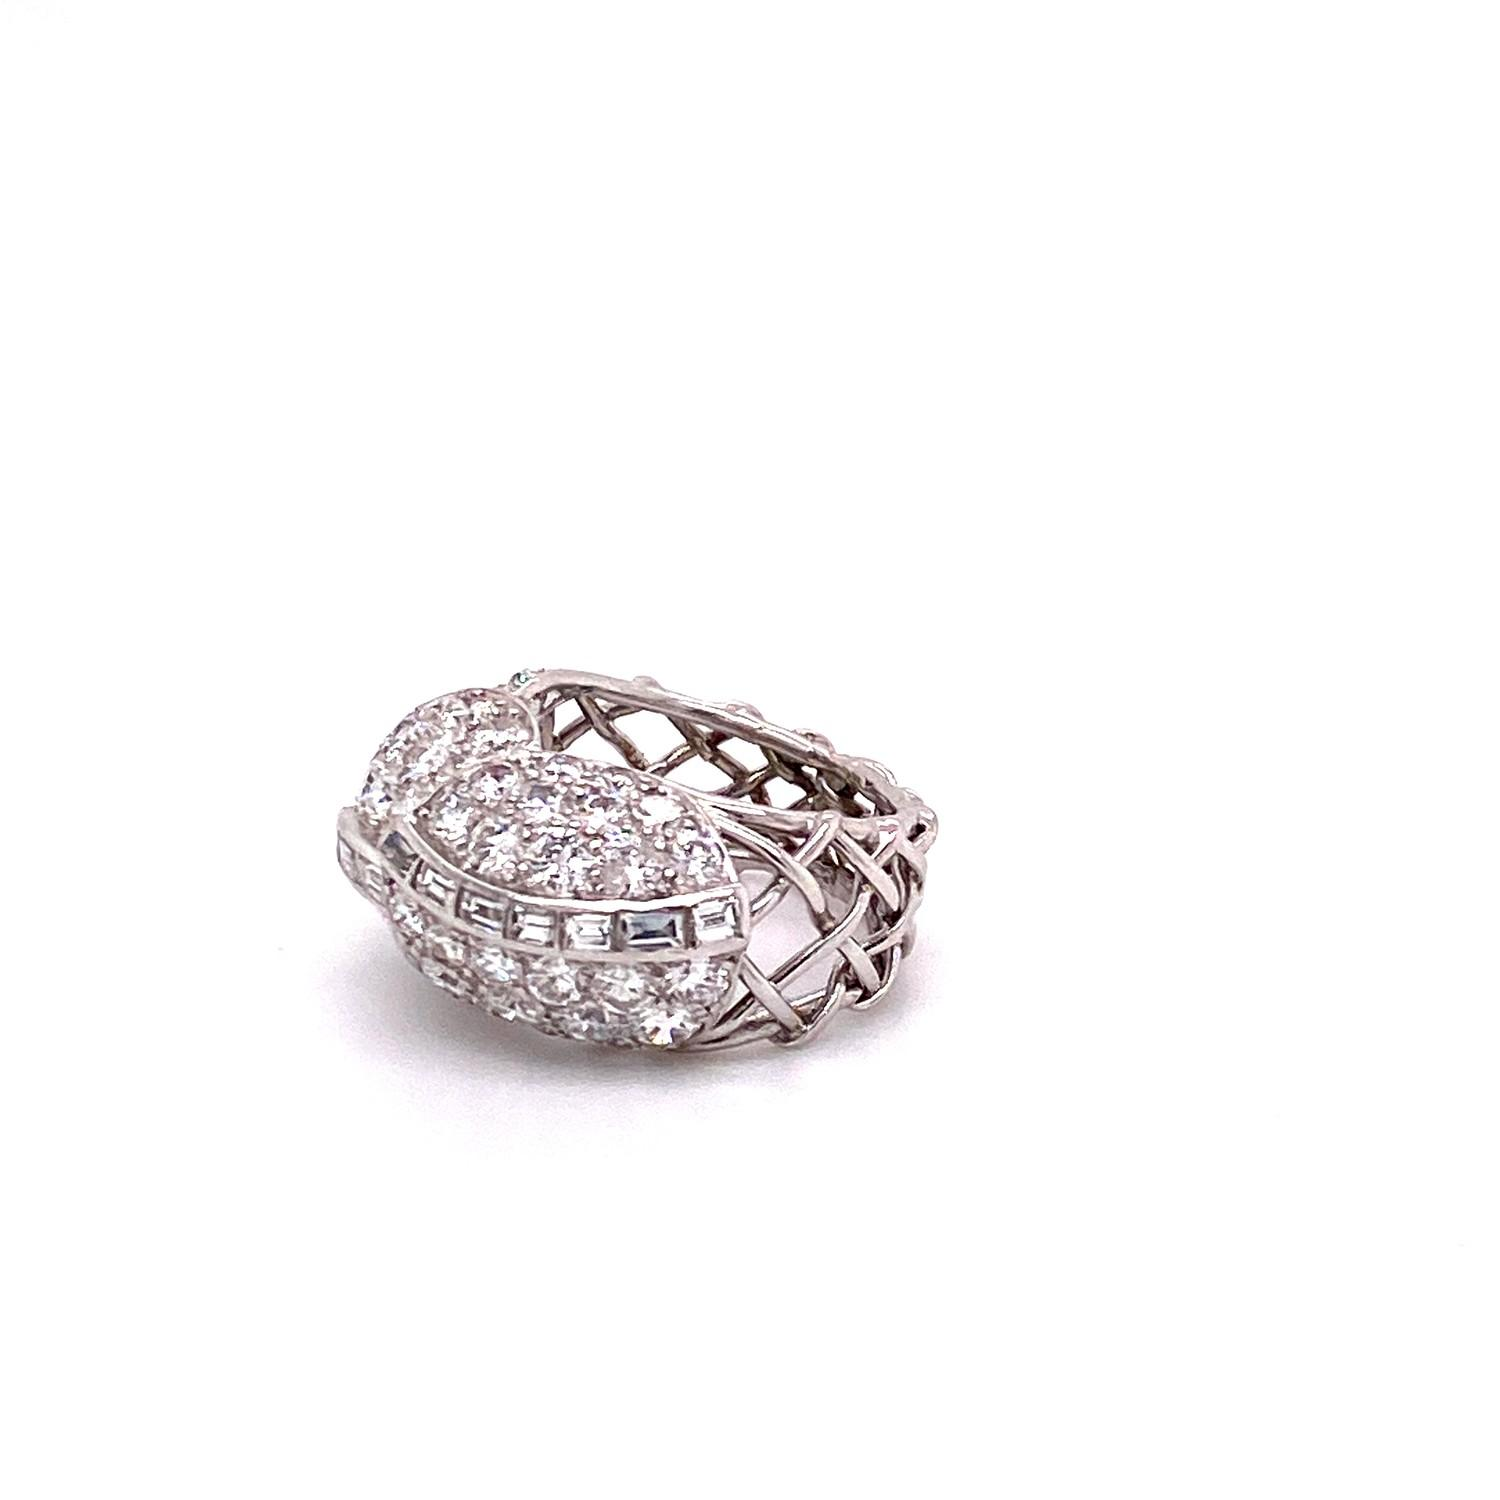 A 1950's Cartier Cocktail Ring, Cartier baguette and brilliant cut pave set dome top bombe ring - Image 7 of 9